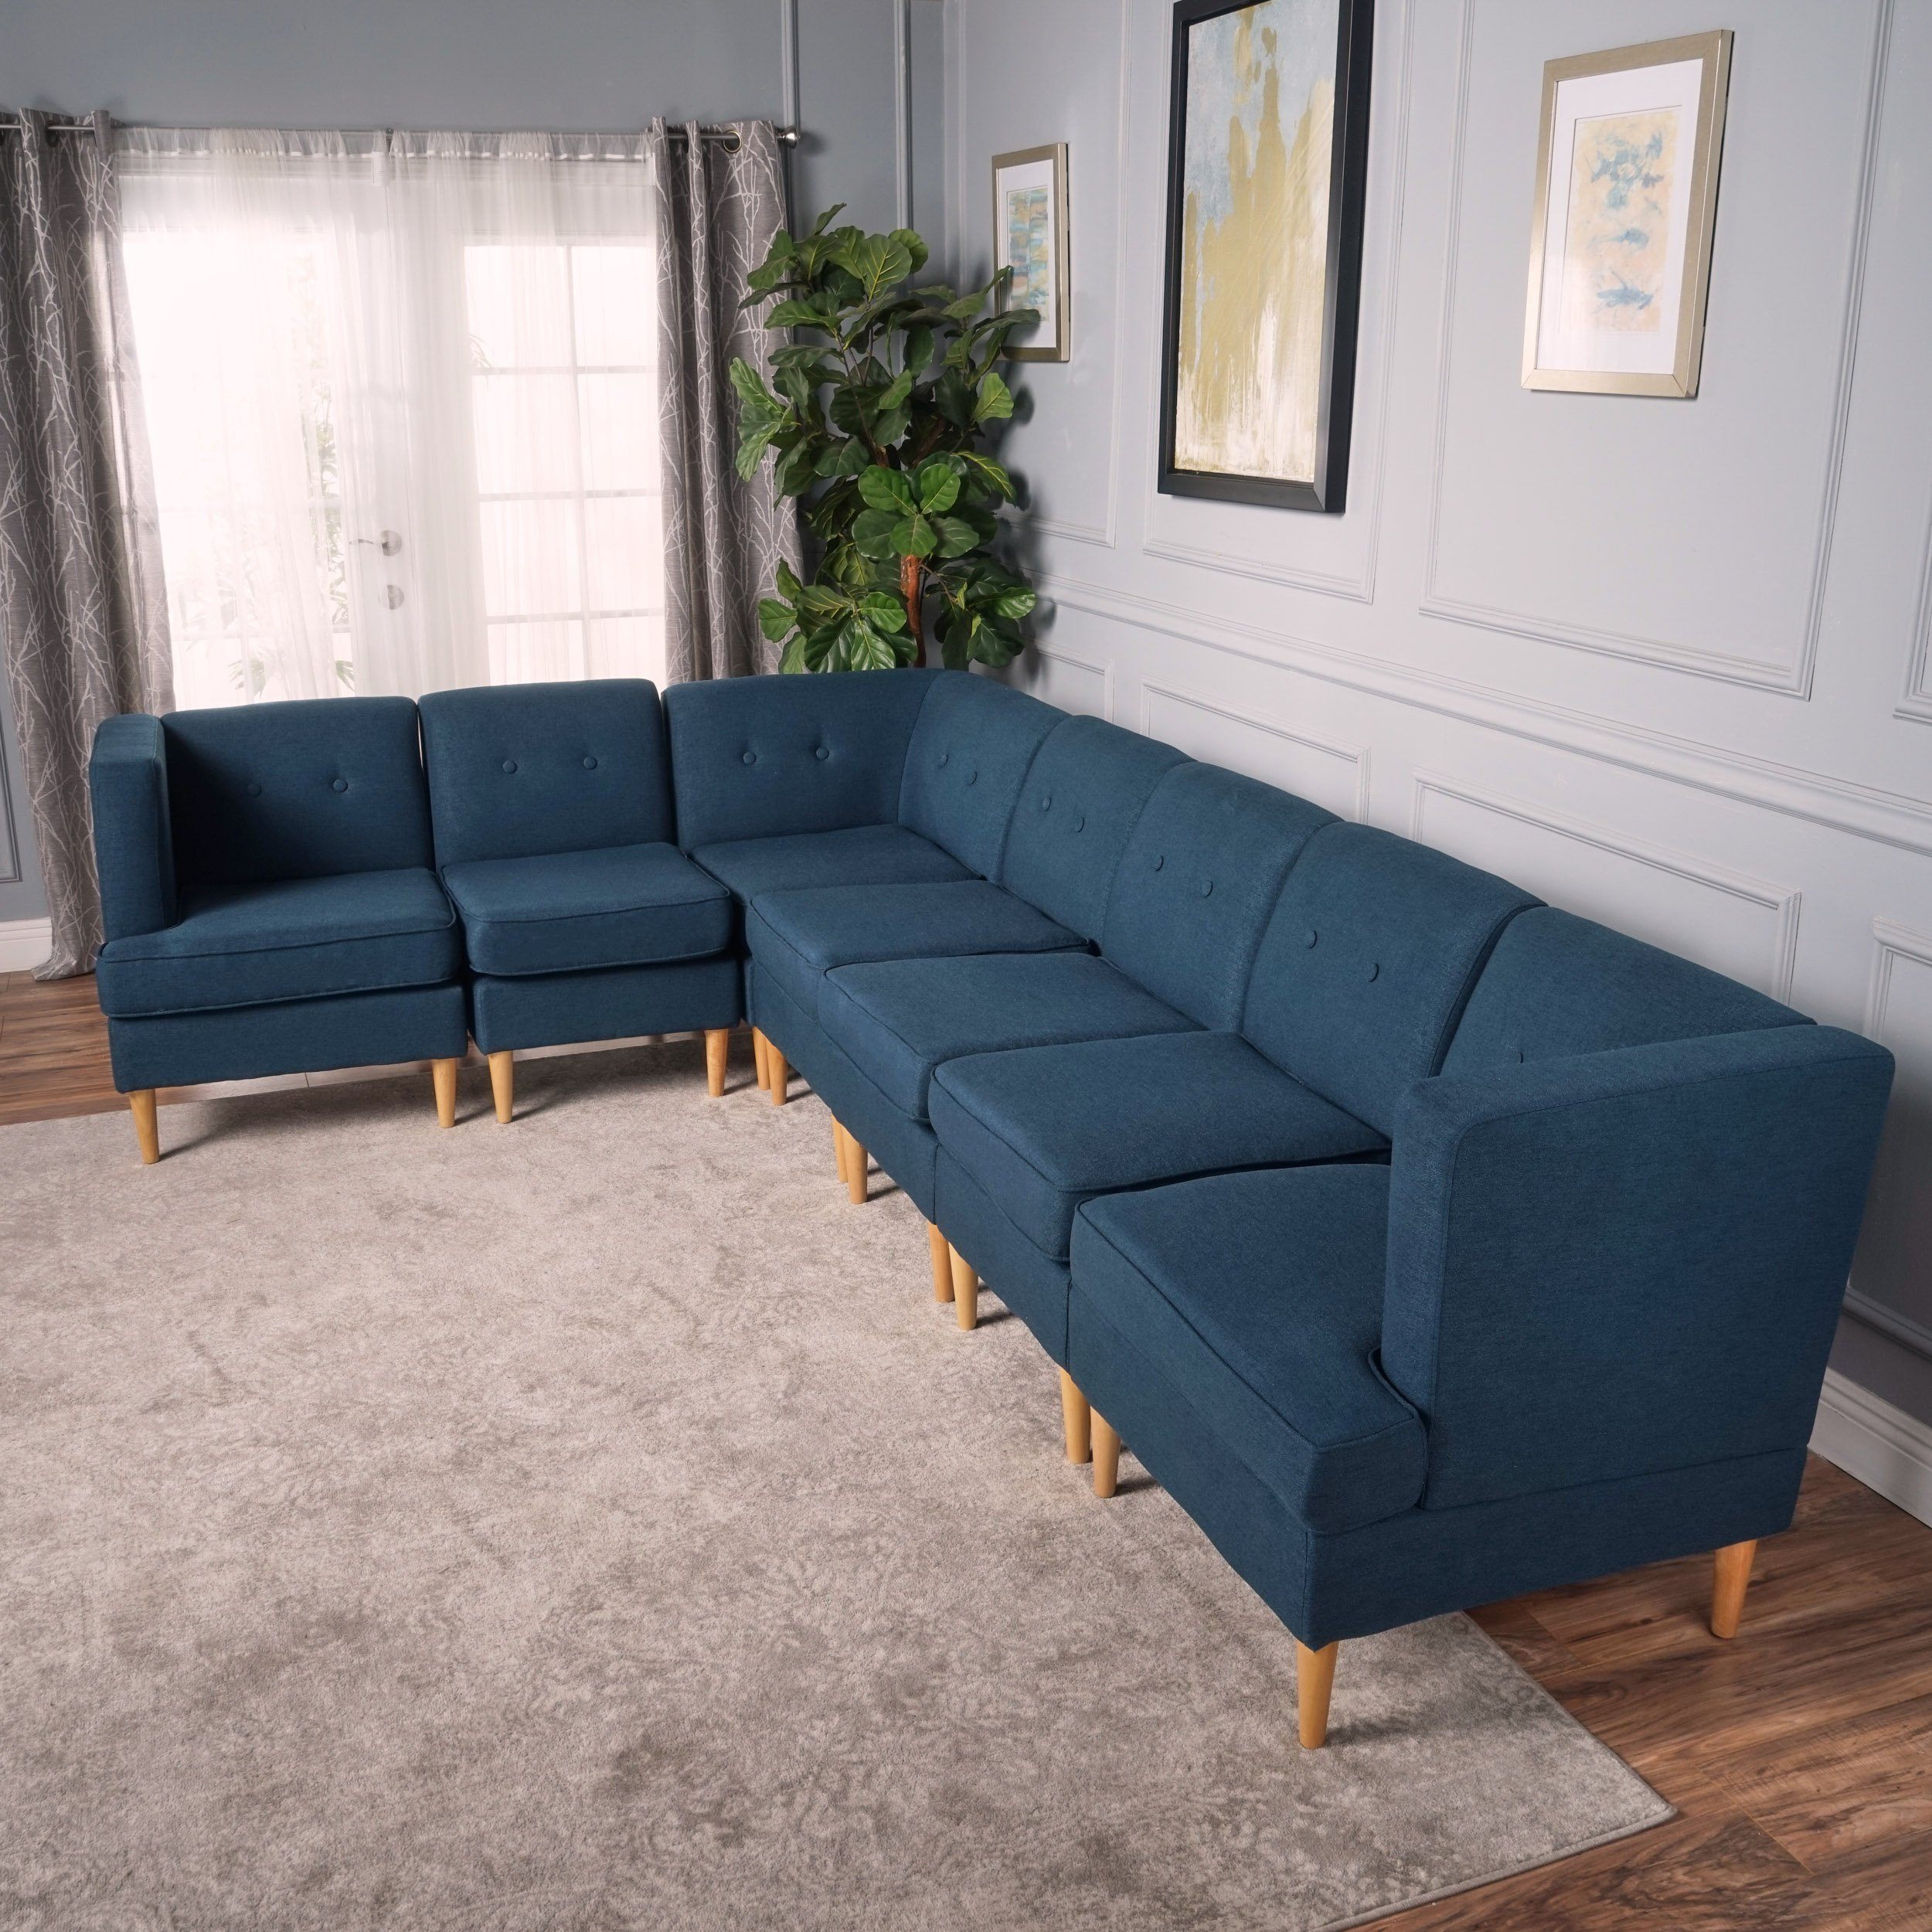 Groovy Christopher Knight Home 301874 Milton Mid Century Modern Sectional Sofa Set Navy Blue Natural Unemploymentrelief Wooden Chair Designs For Living Room Unemploymentrelieforg